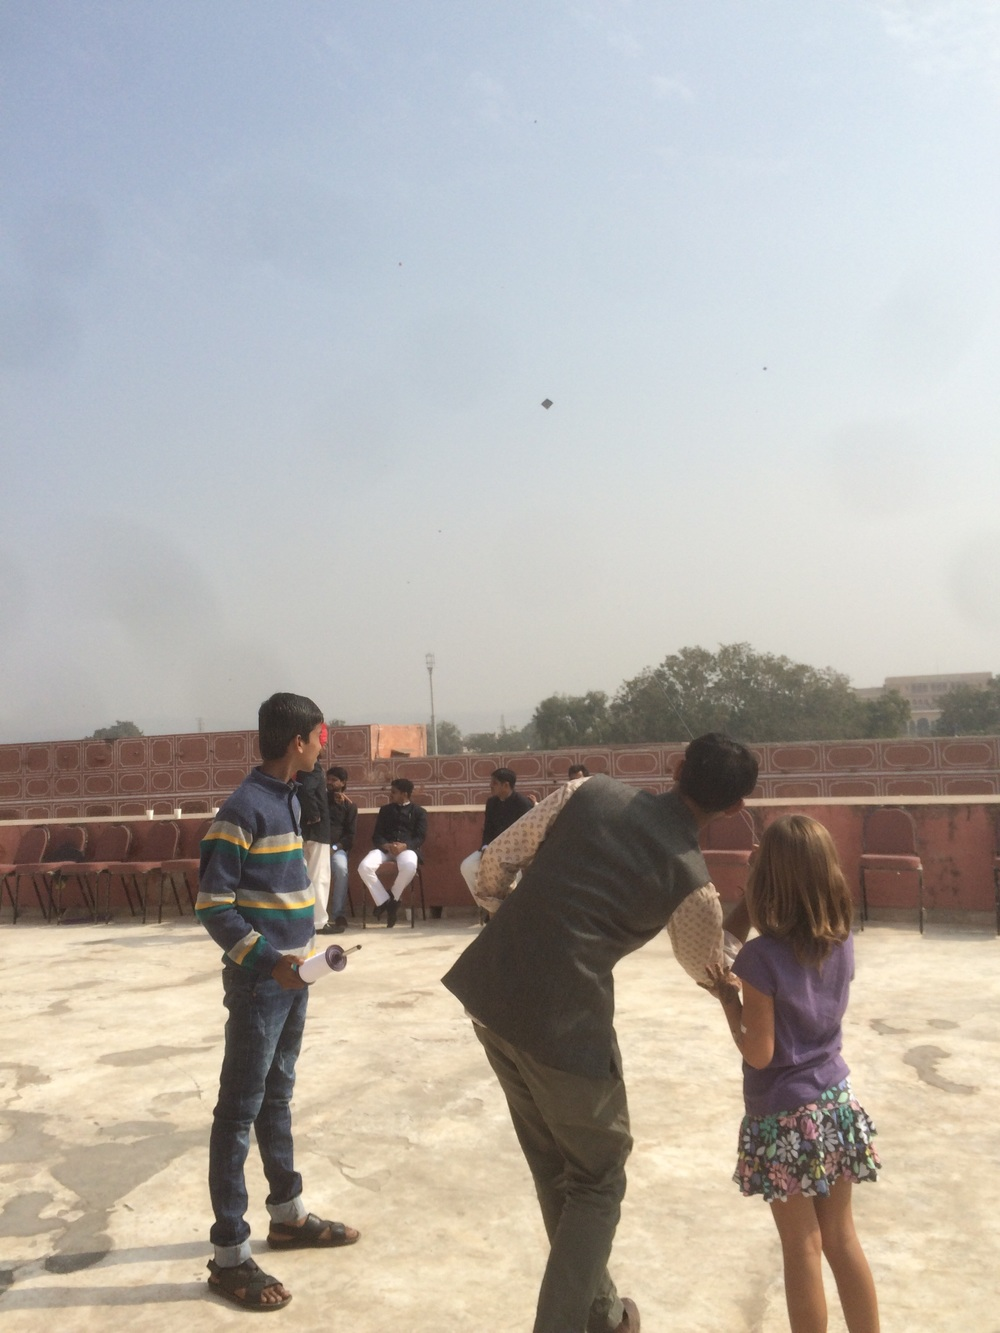 Kite flying at the City Palace